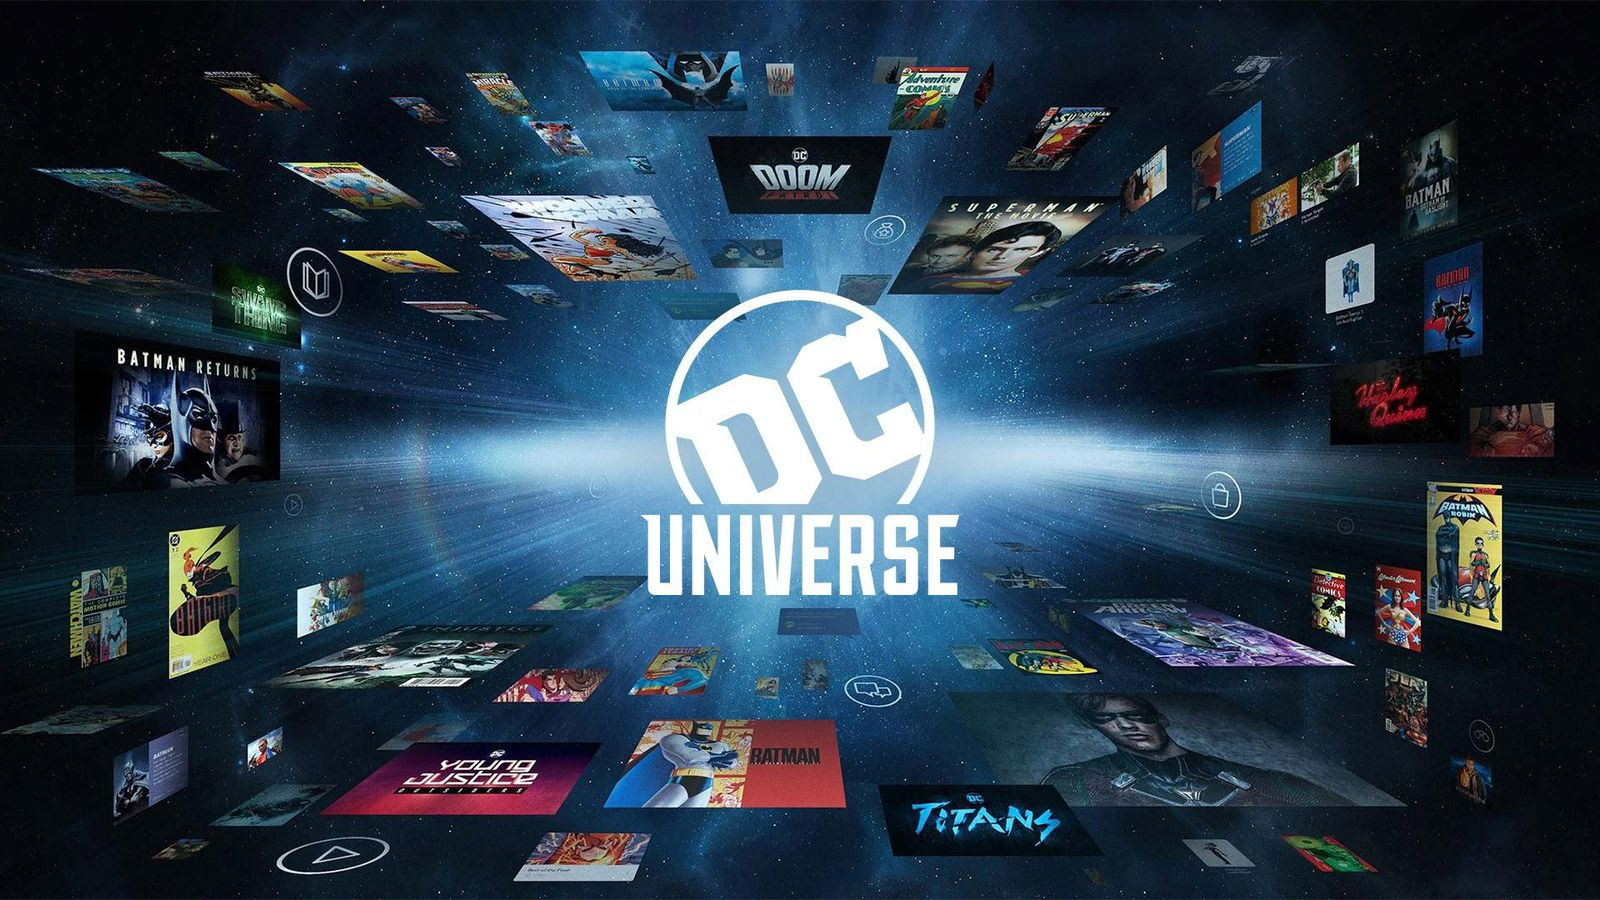 DC Universe Limited 50% Membership Discount and Additions to